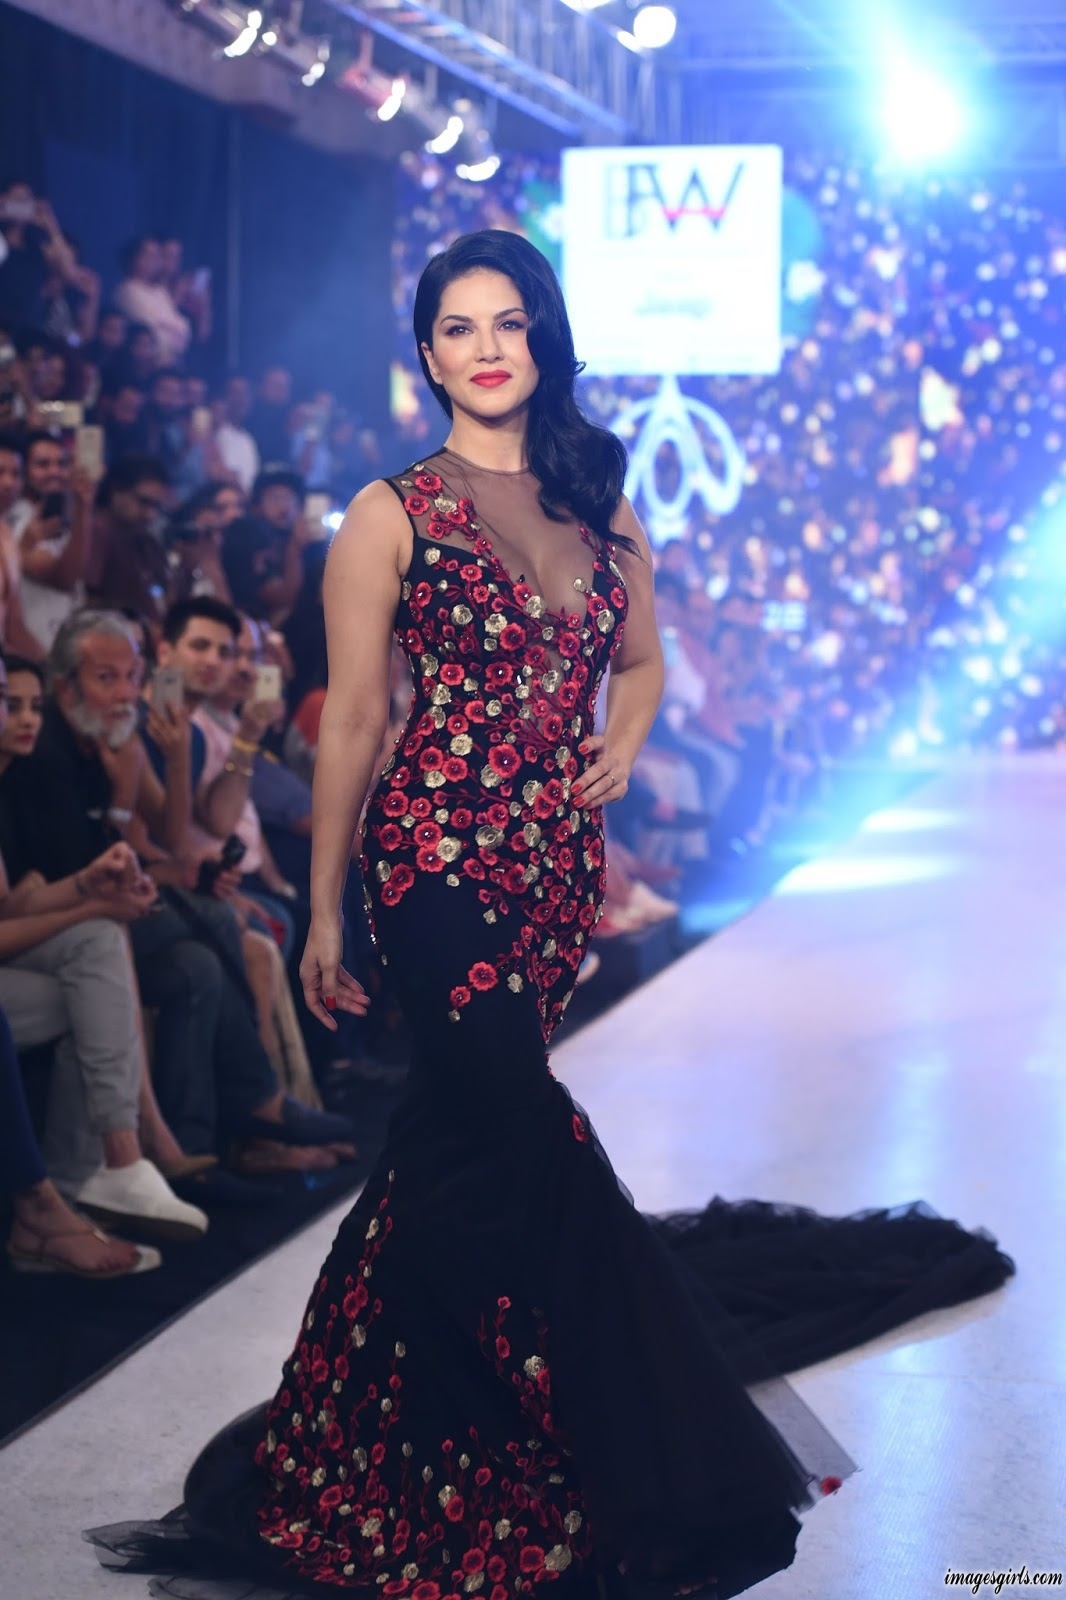 Sunny Leone Walks On Stage At The India Beach Fashion Week - Images Girls-1778